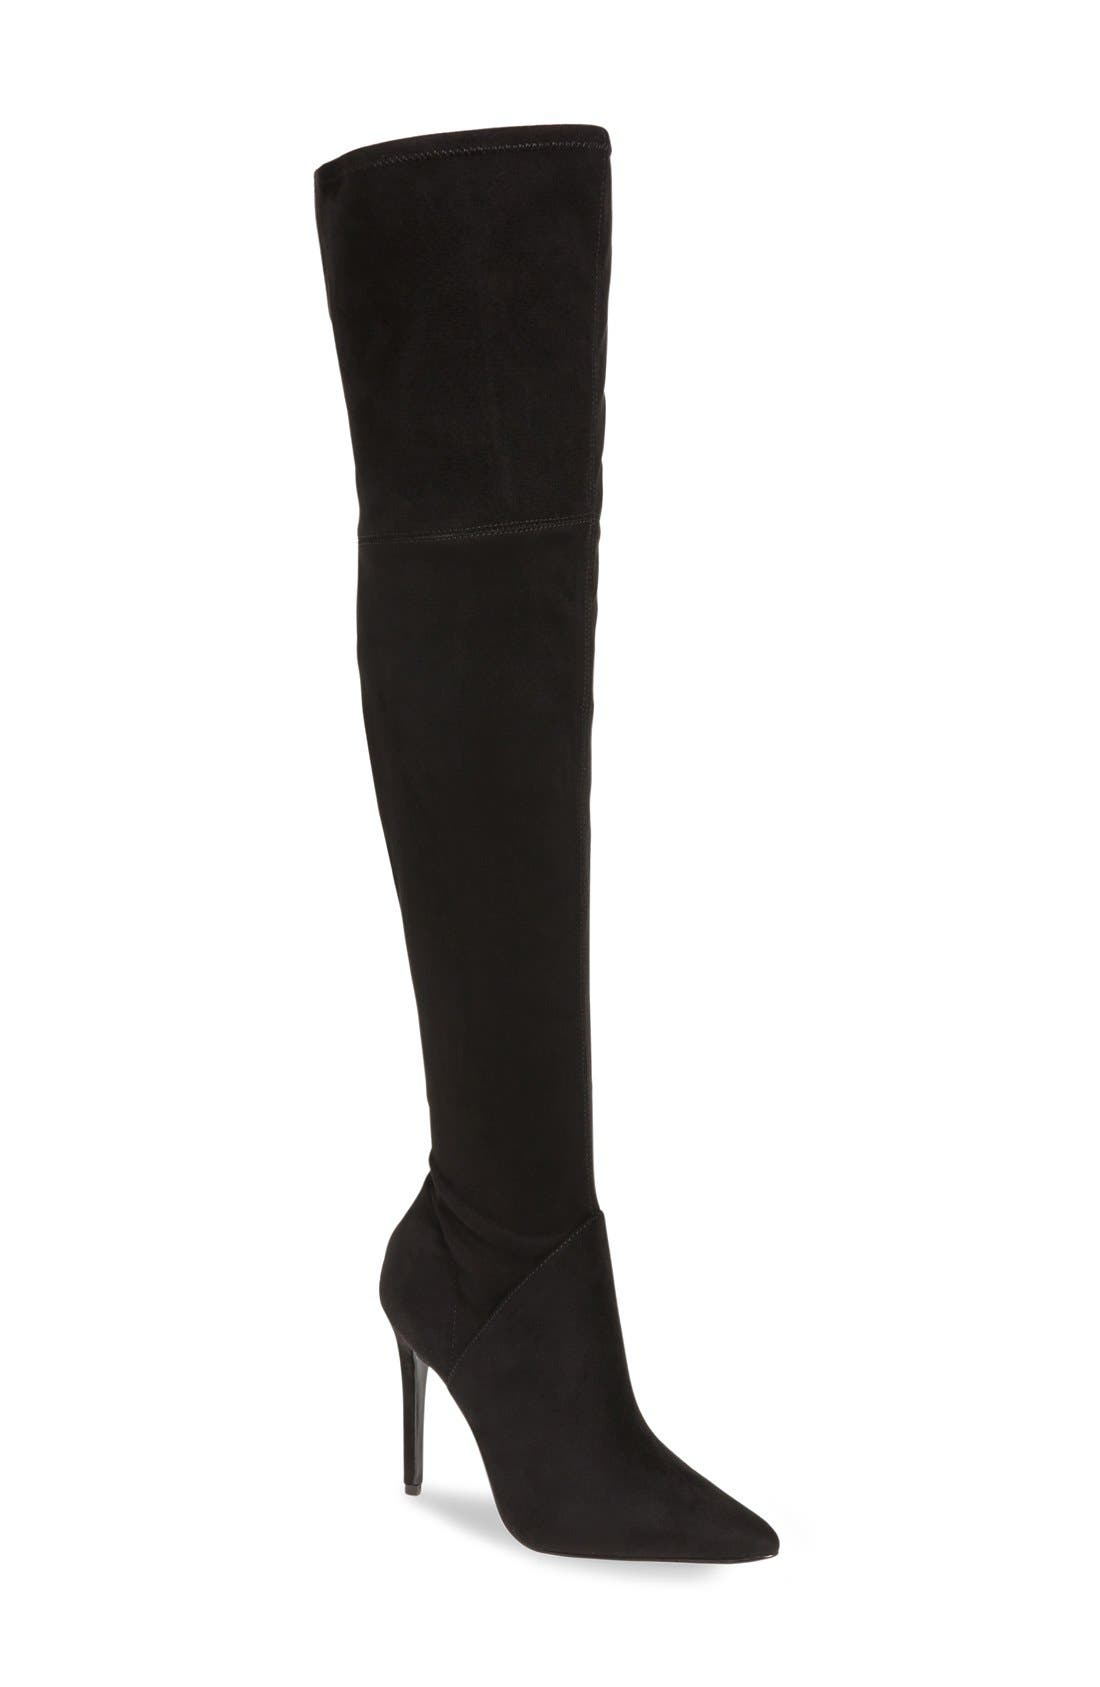 KENDALL + KYLIE Kayla Stretch Over the Knee Boot (Women)